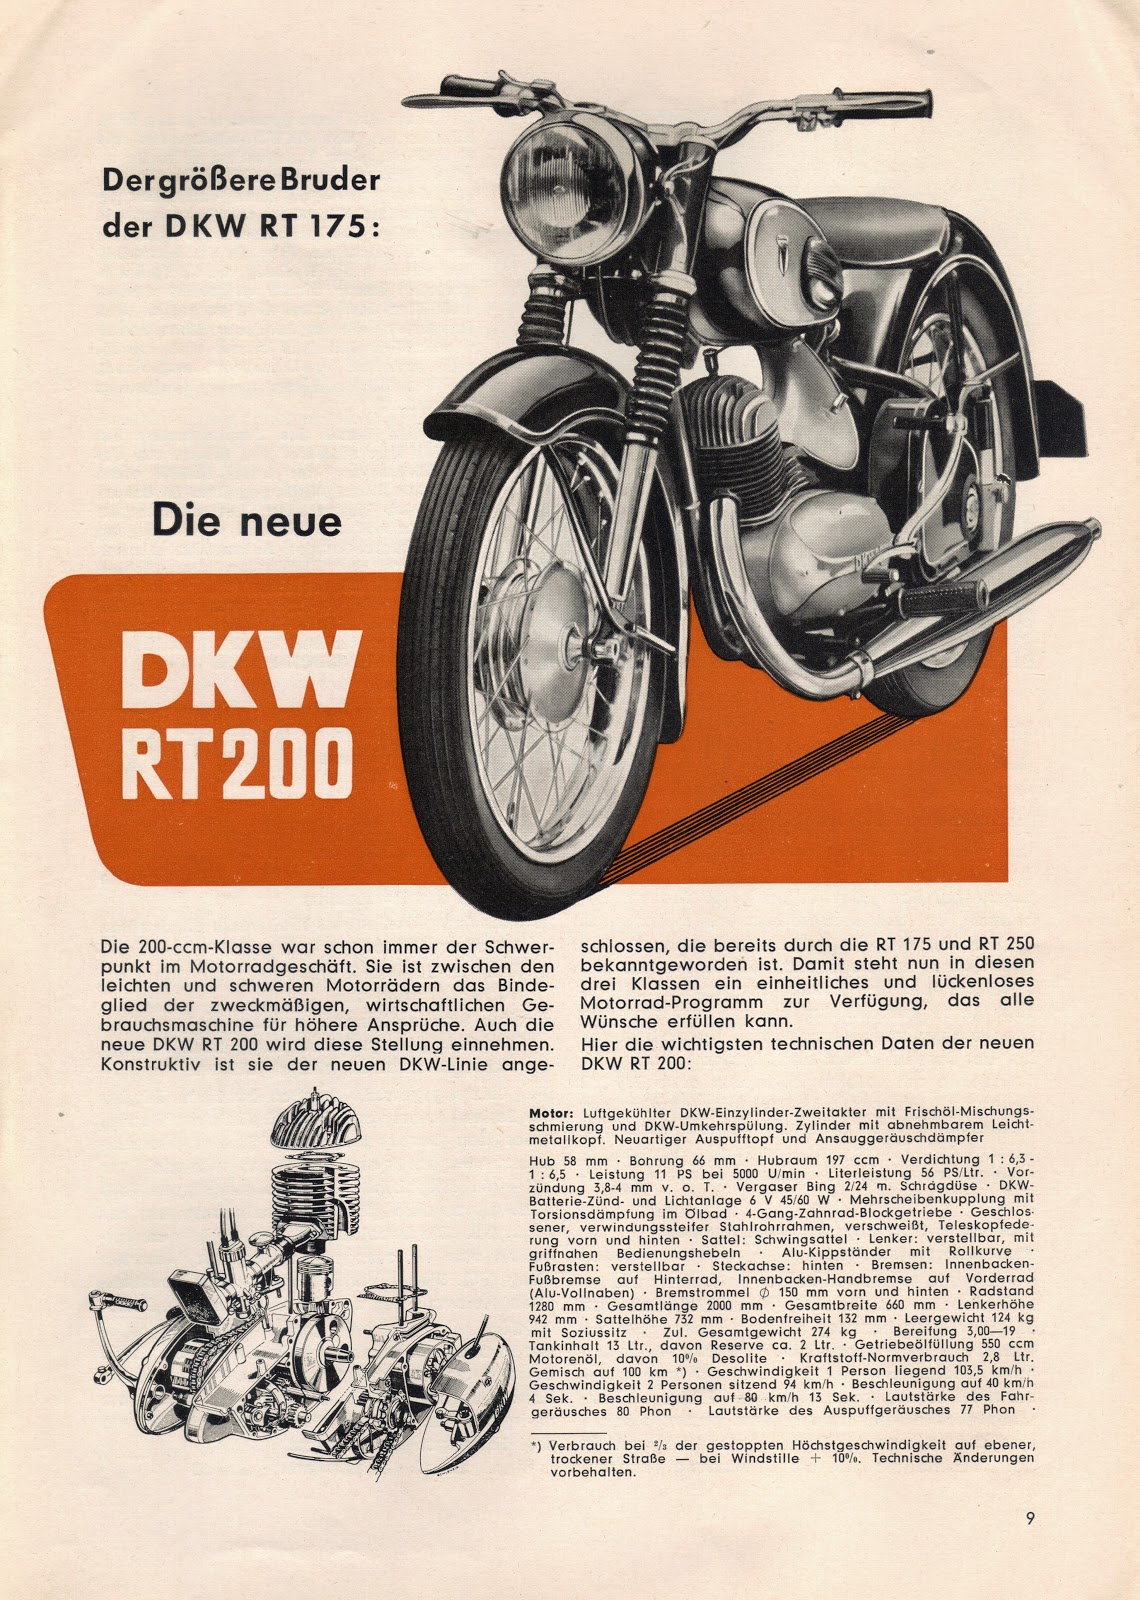 auto union project 1954 dkw magazine sunny scooter wiring diagram adly thunderbike scooter wiring diagram #4